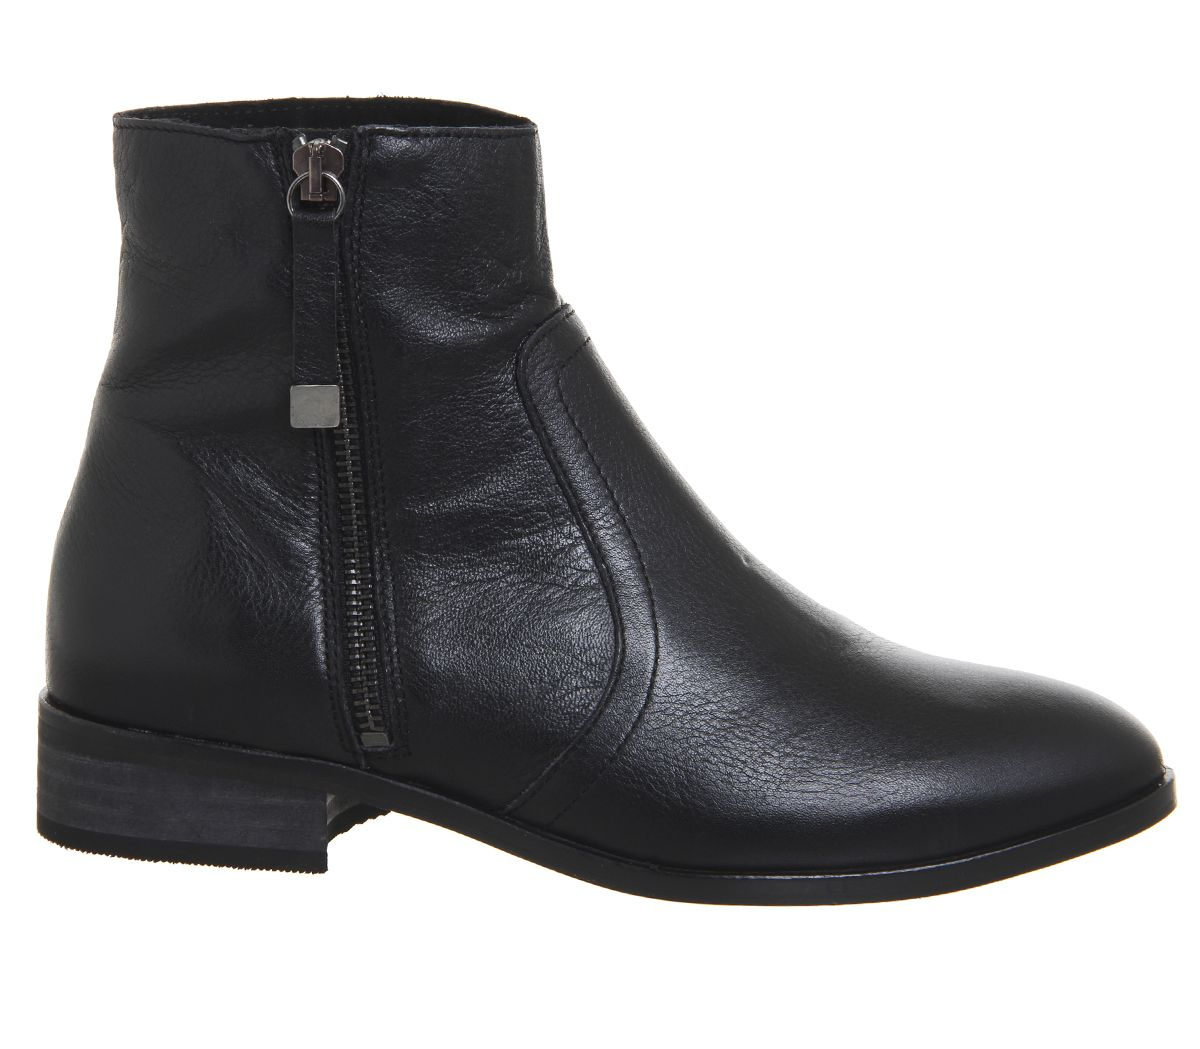 0eb47b3c12d Office Actor Side Zip Flat Ankle Boots Black Leather - Womens Boots